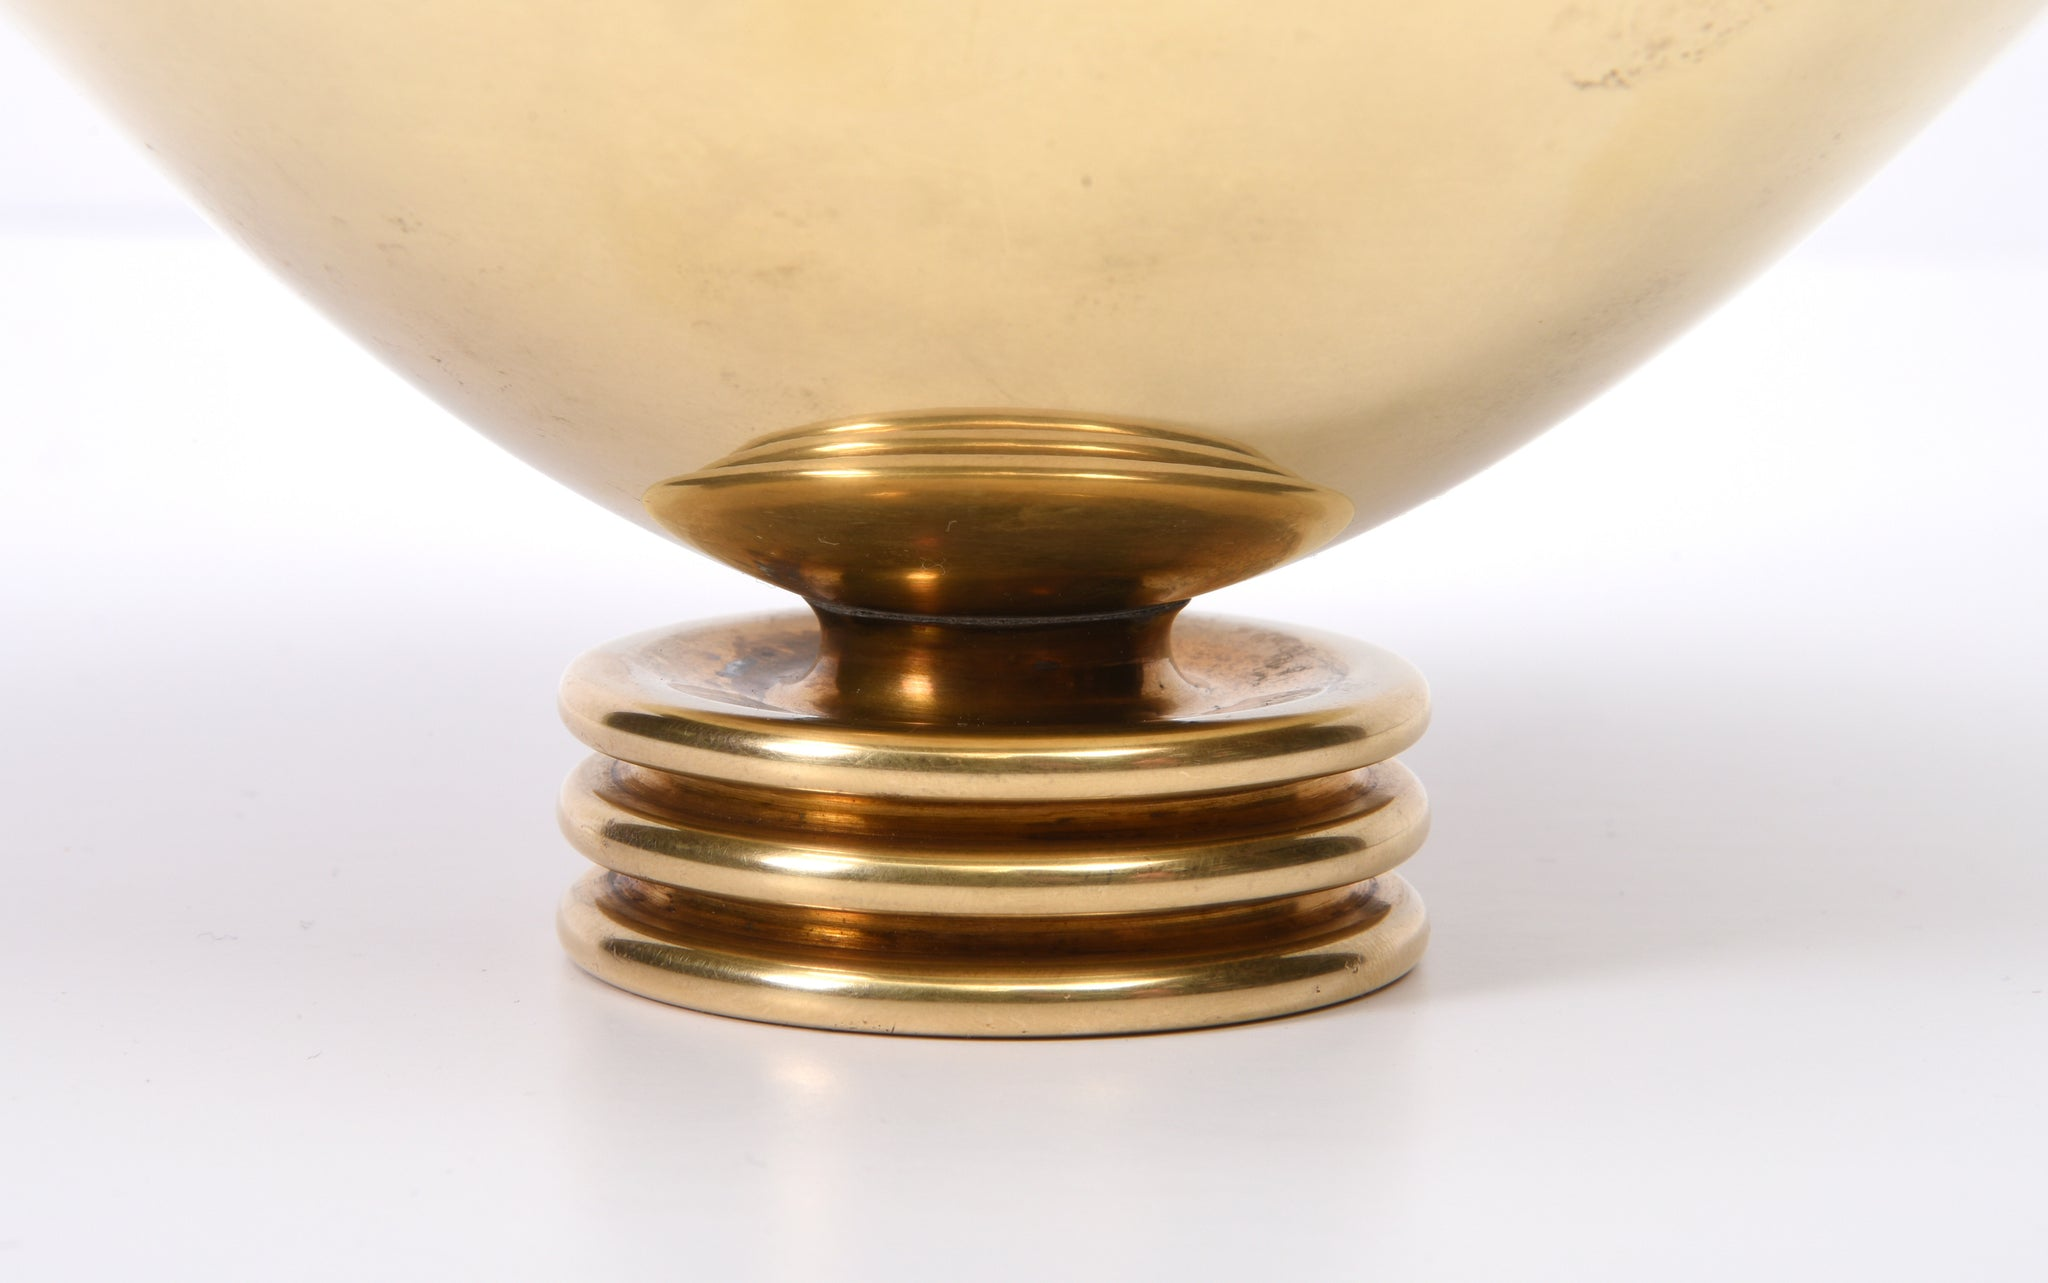 Paavo Tynell Brass Bowl, Taito Oy, 1940s